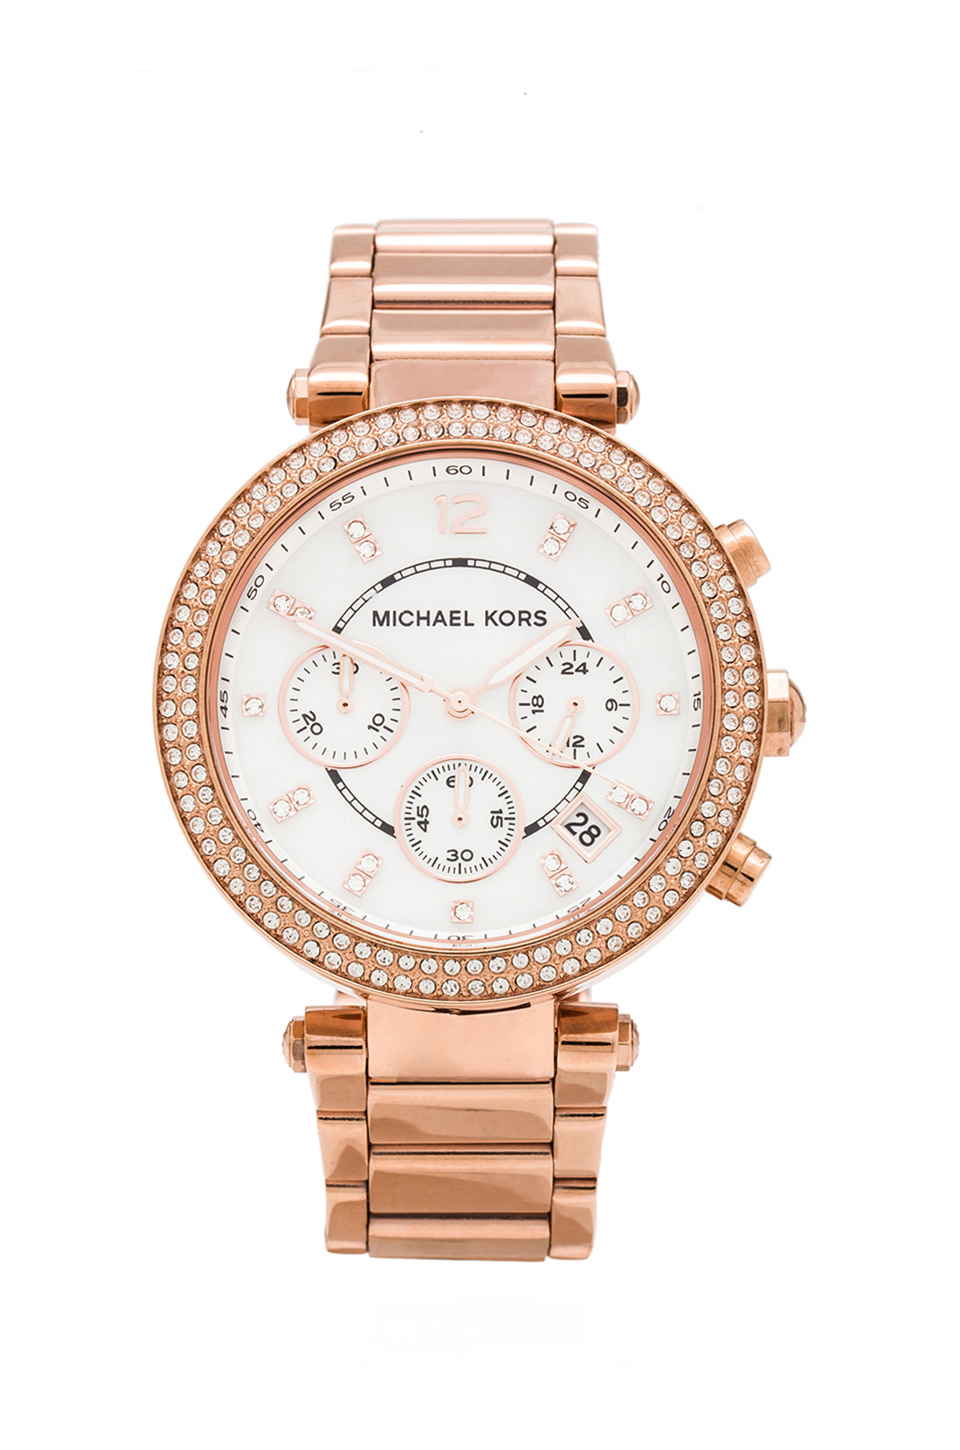 Michael Kors Parker Watch in Rose Gold